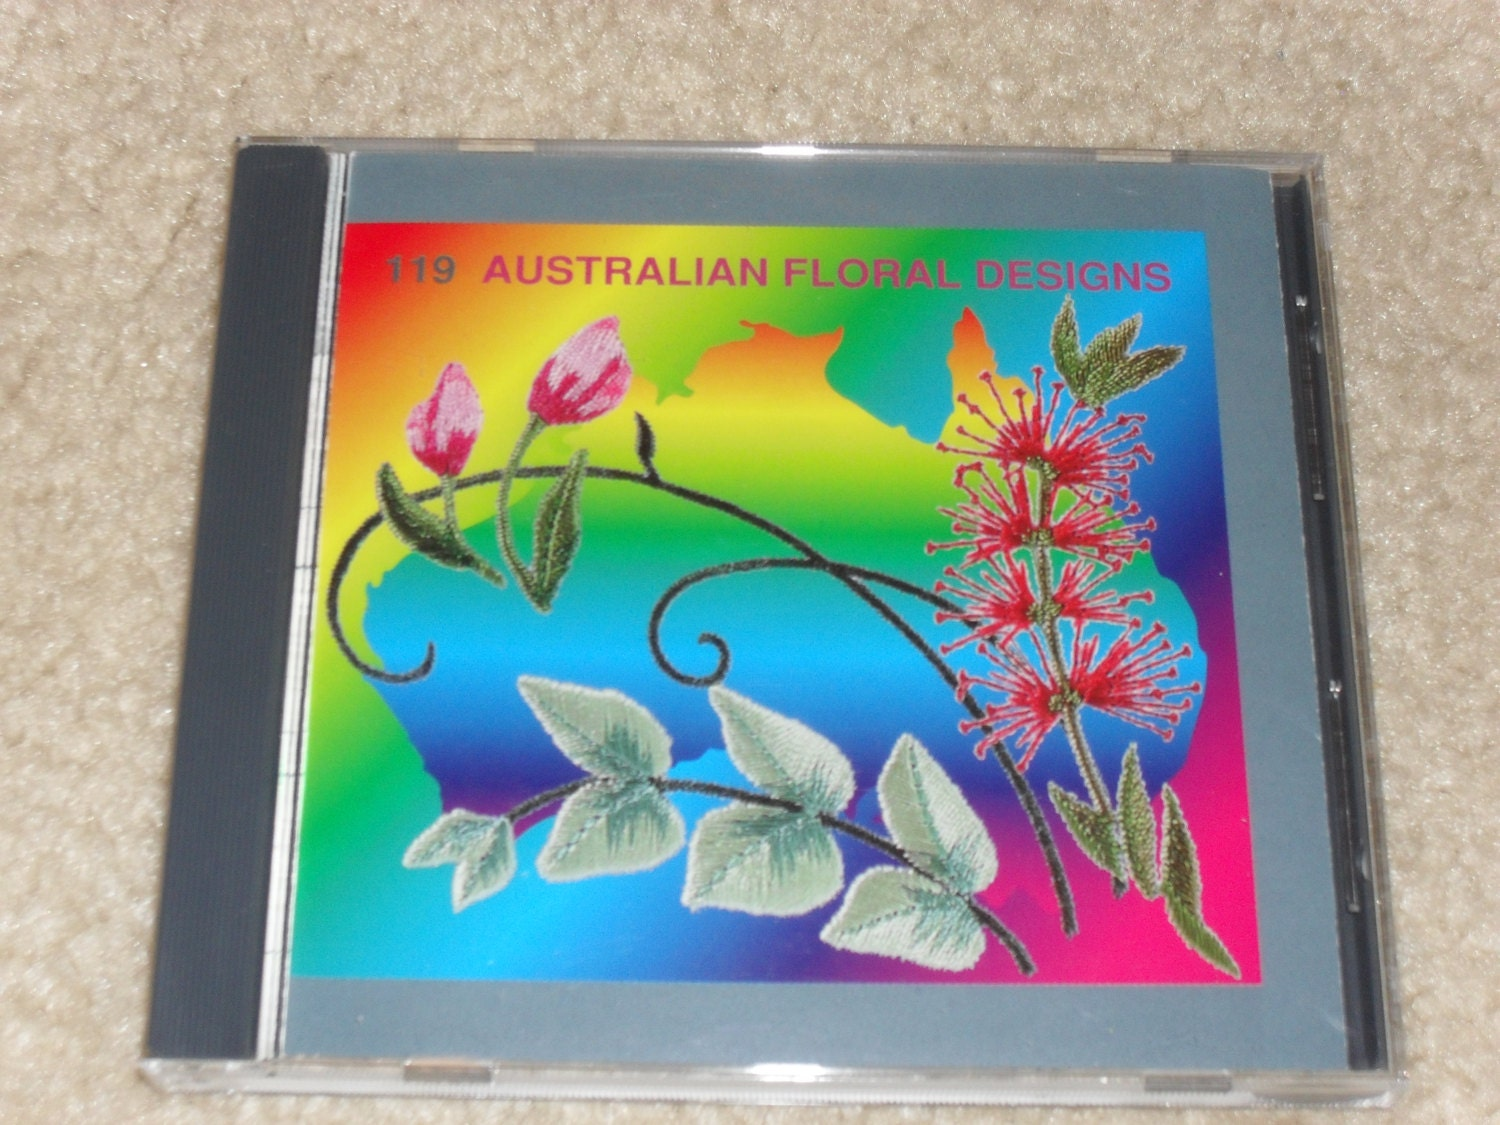 Janome memory card 119 australian floral designs for Janome memory craft 9000 problems